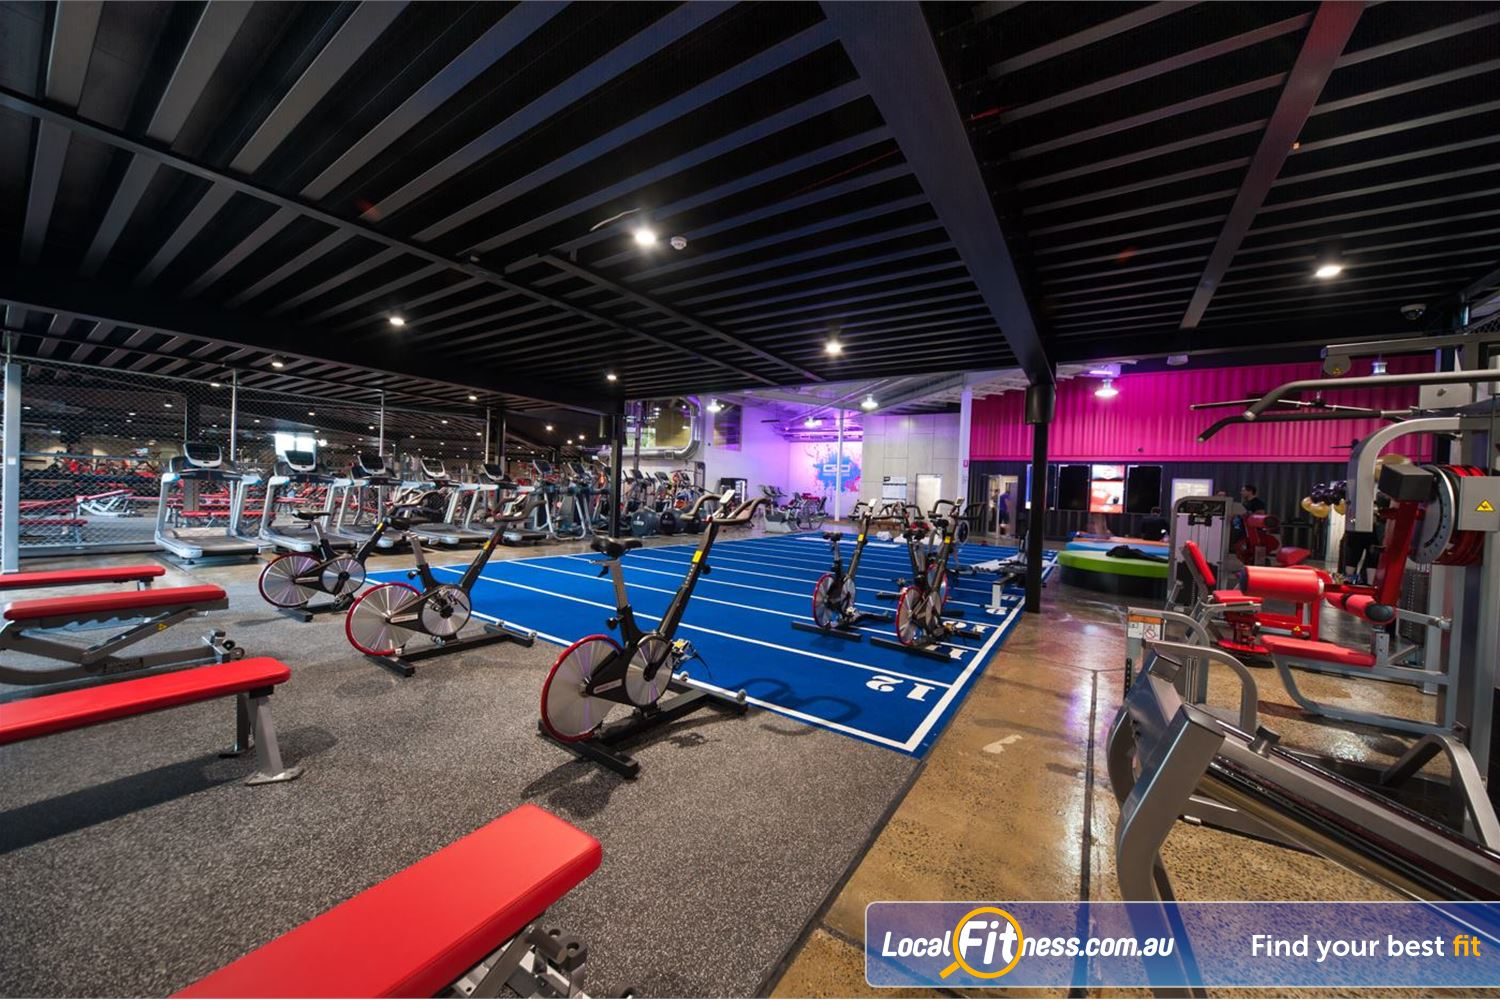 Goodlife Health Clubs Springwood Welcome to the Goodlife Superclub gym in Springwood.